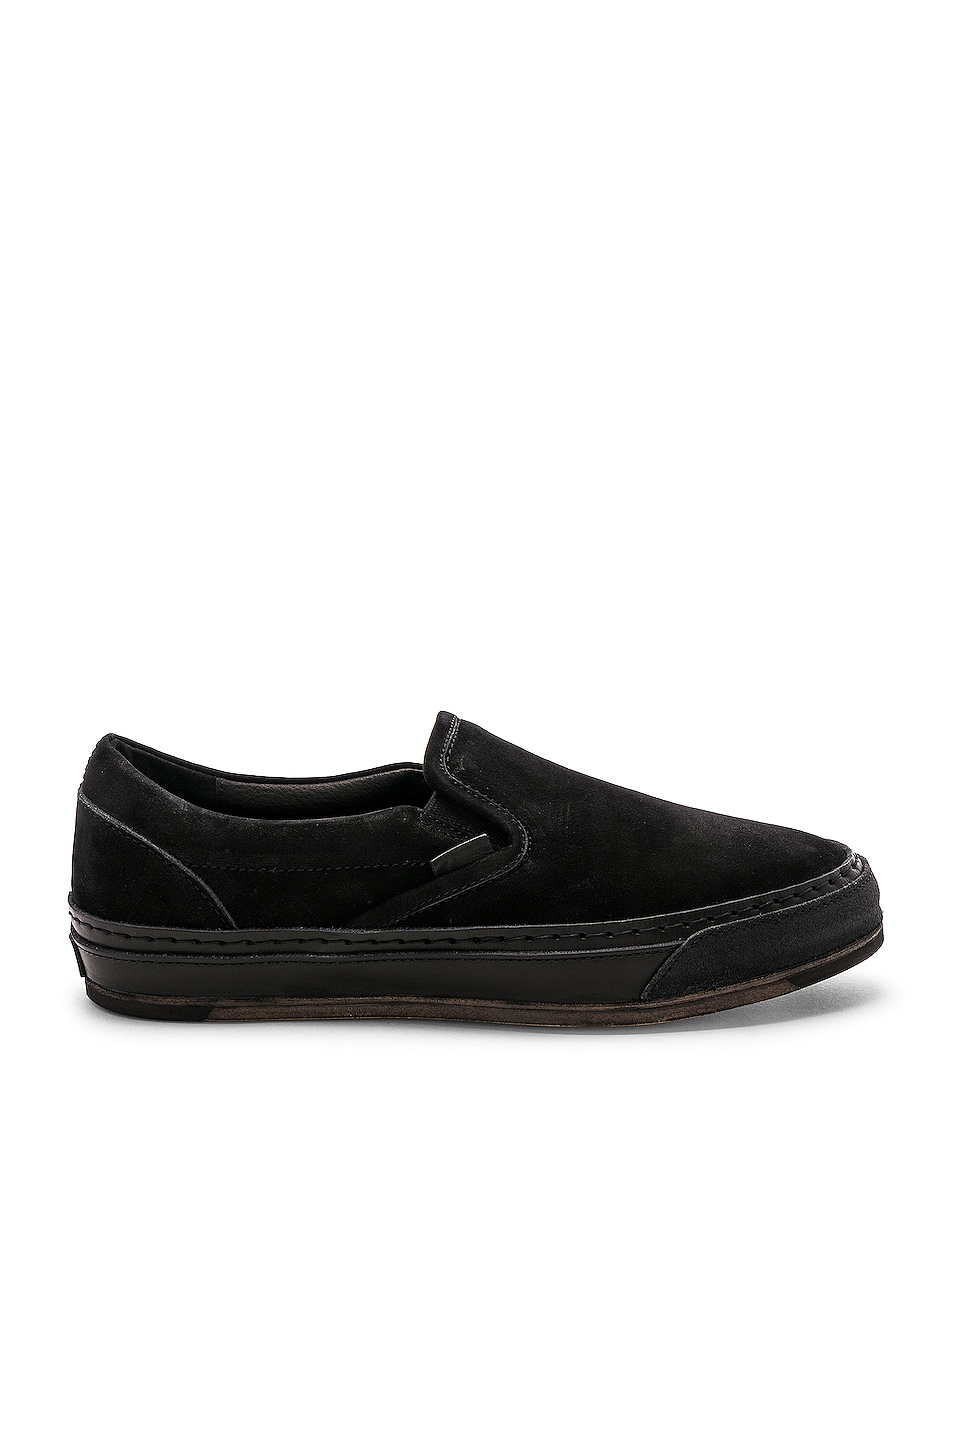 Image 1 of Hender Scheme Manual Industrial Product 17 in Black